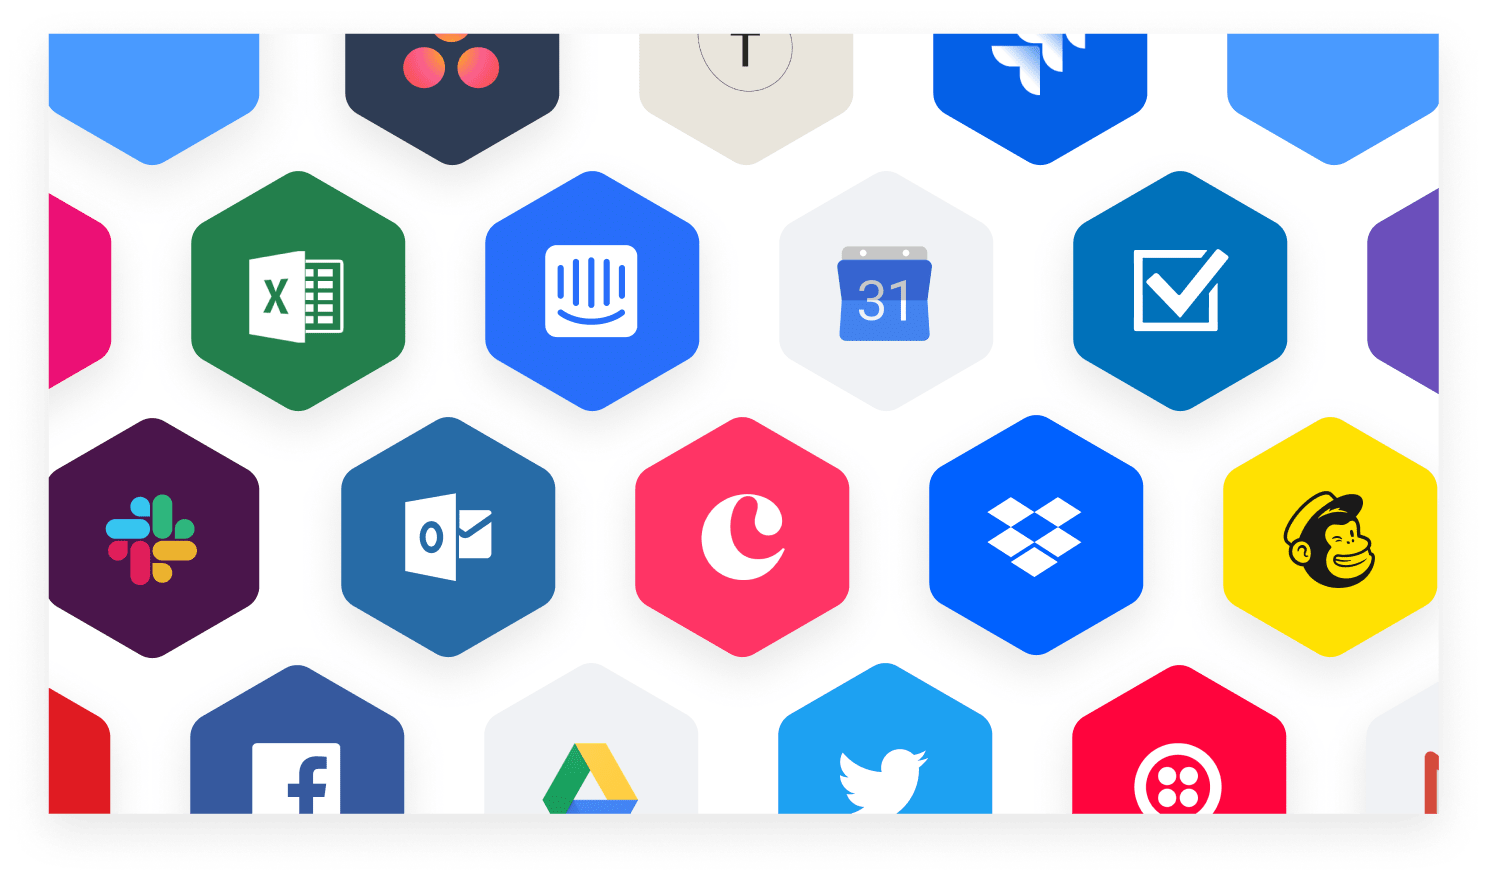 logos of different companies monday.com integrates with, like Facebook, Slack, Twitter, etc.